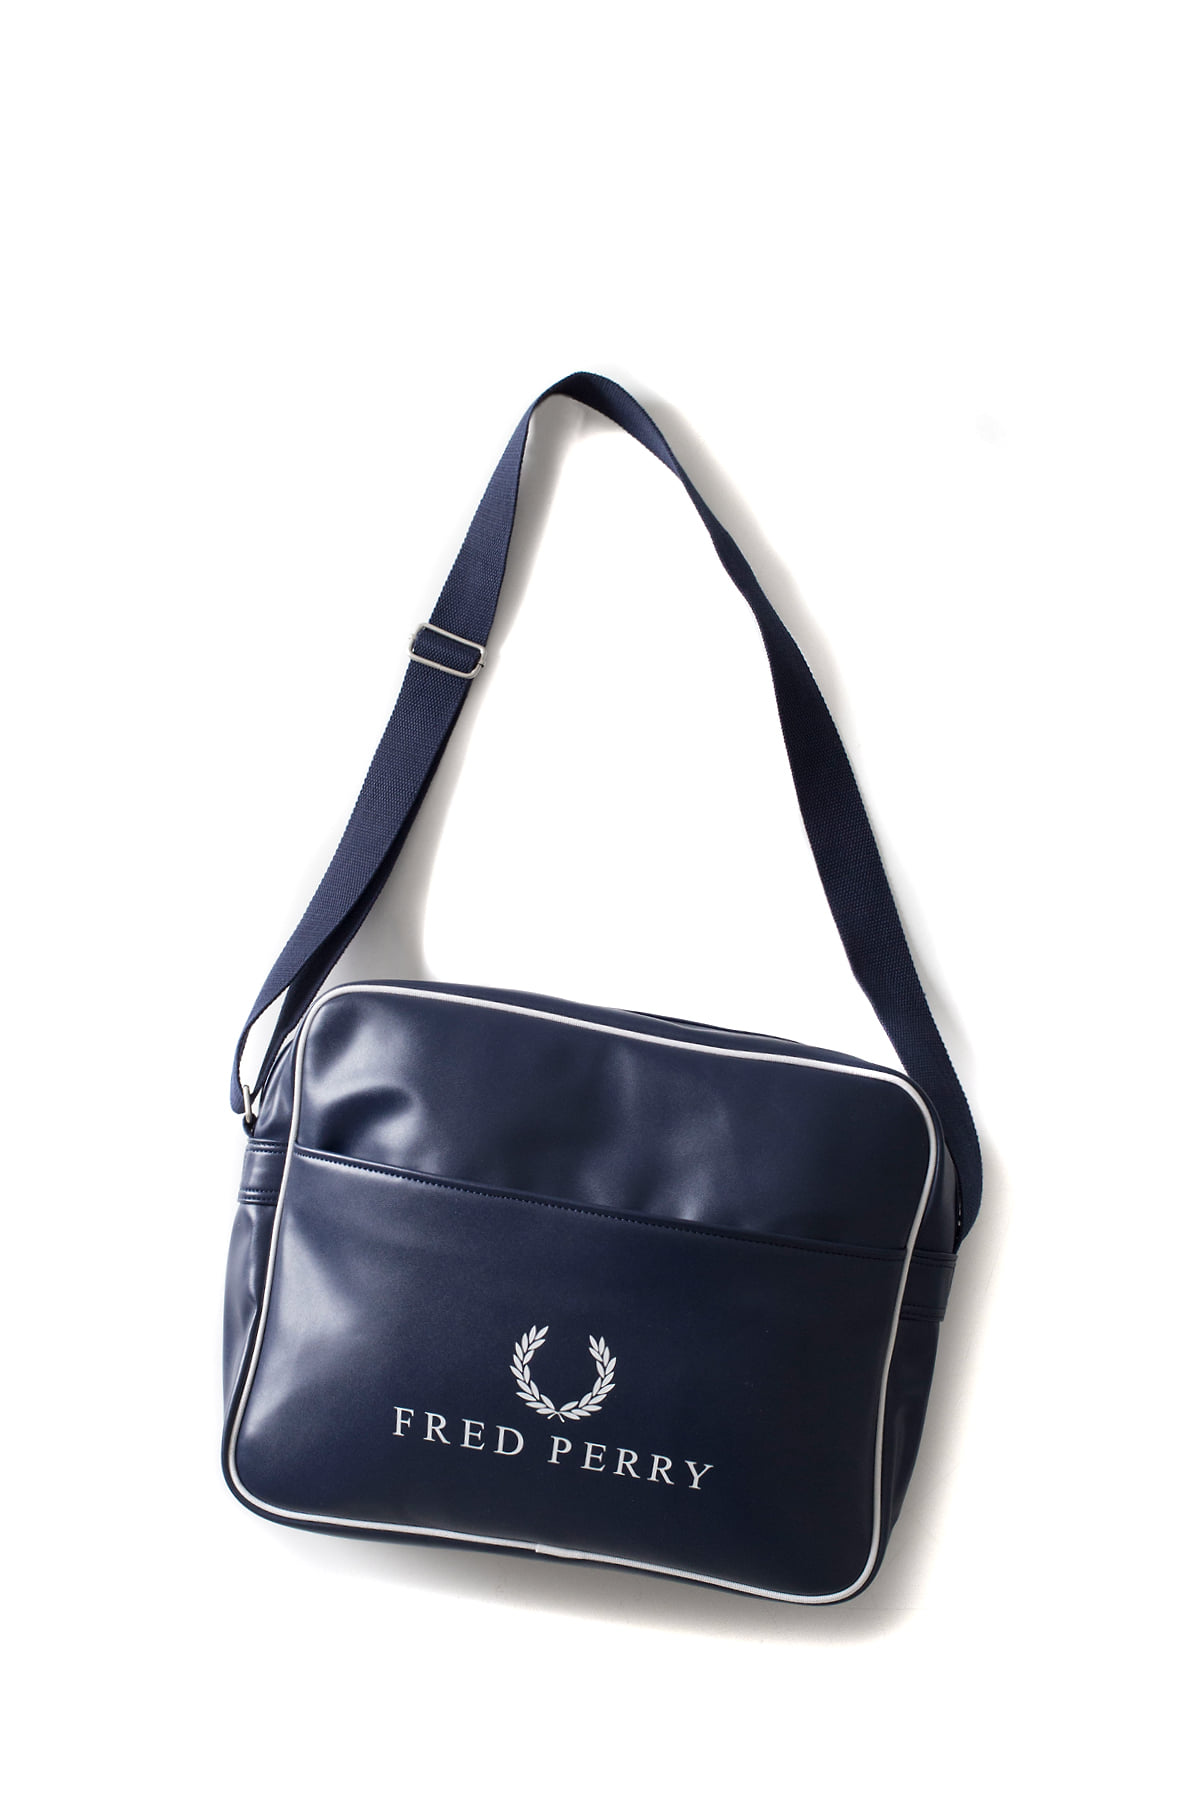 FRED PERRY : Tennis Shoulder Bag (Navy)